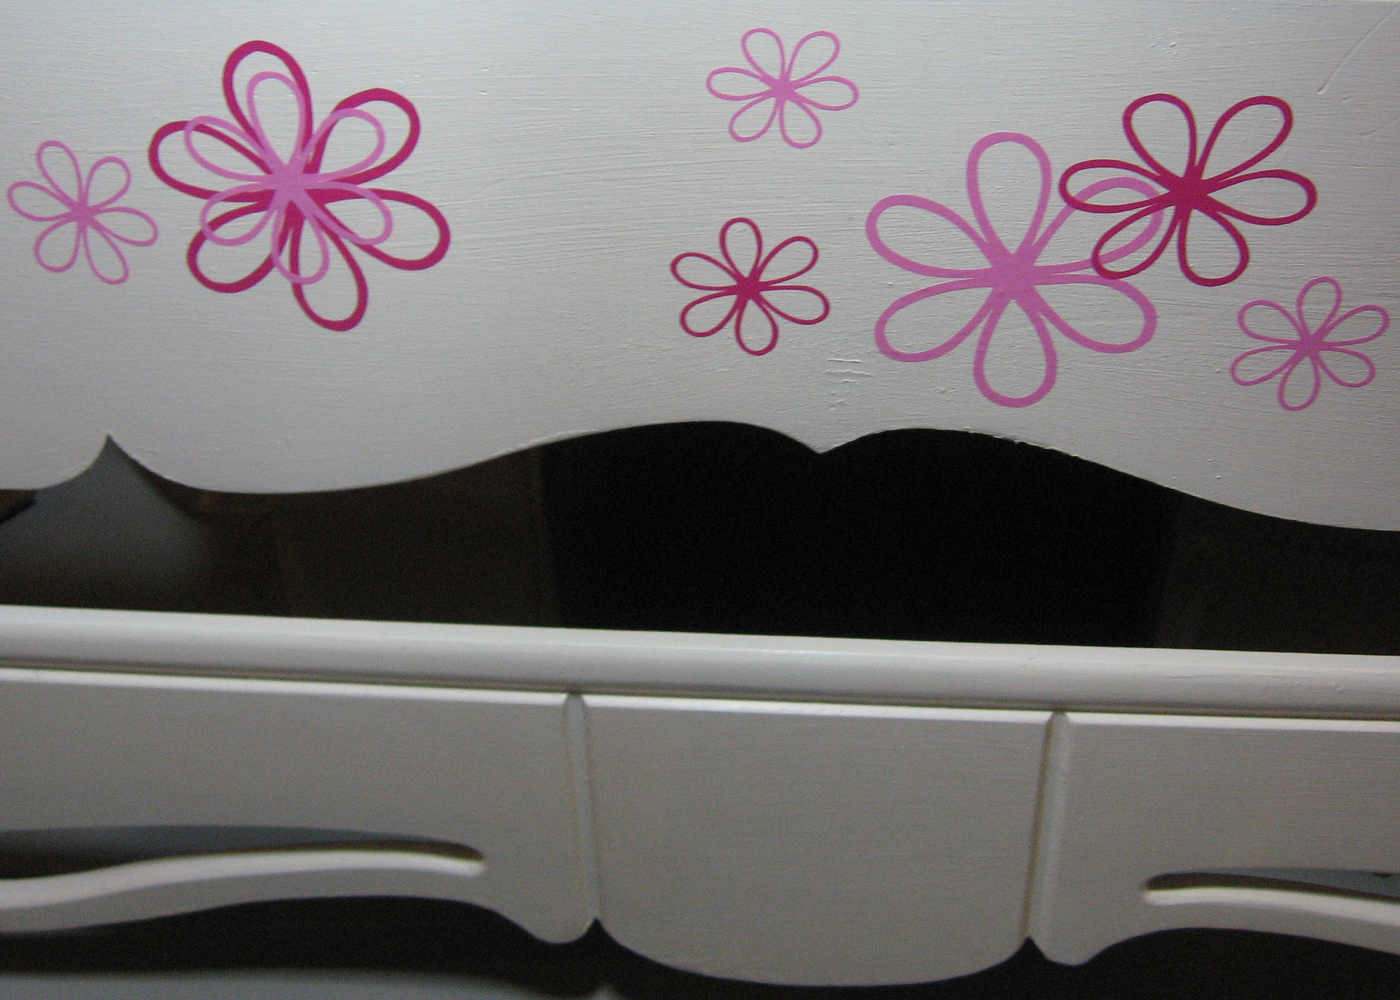 daisy-flower-wall-decals-on-bed.jpg